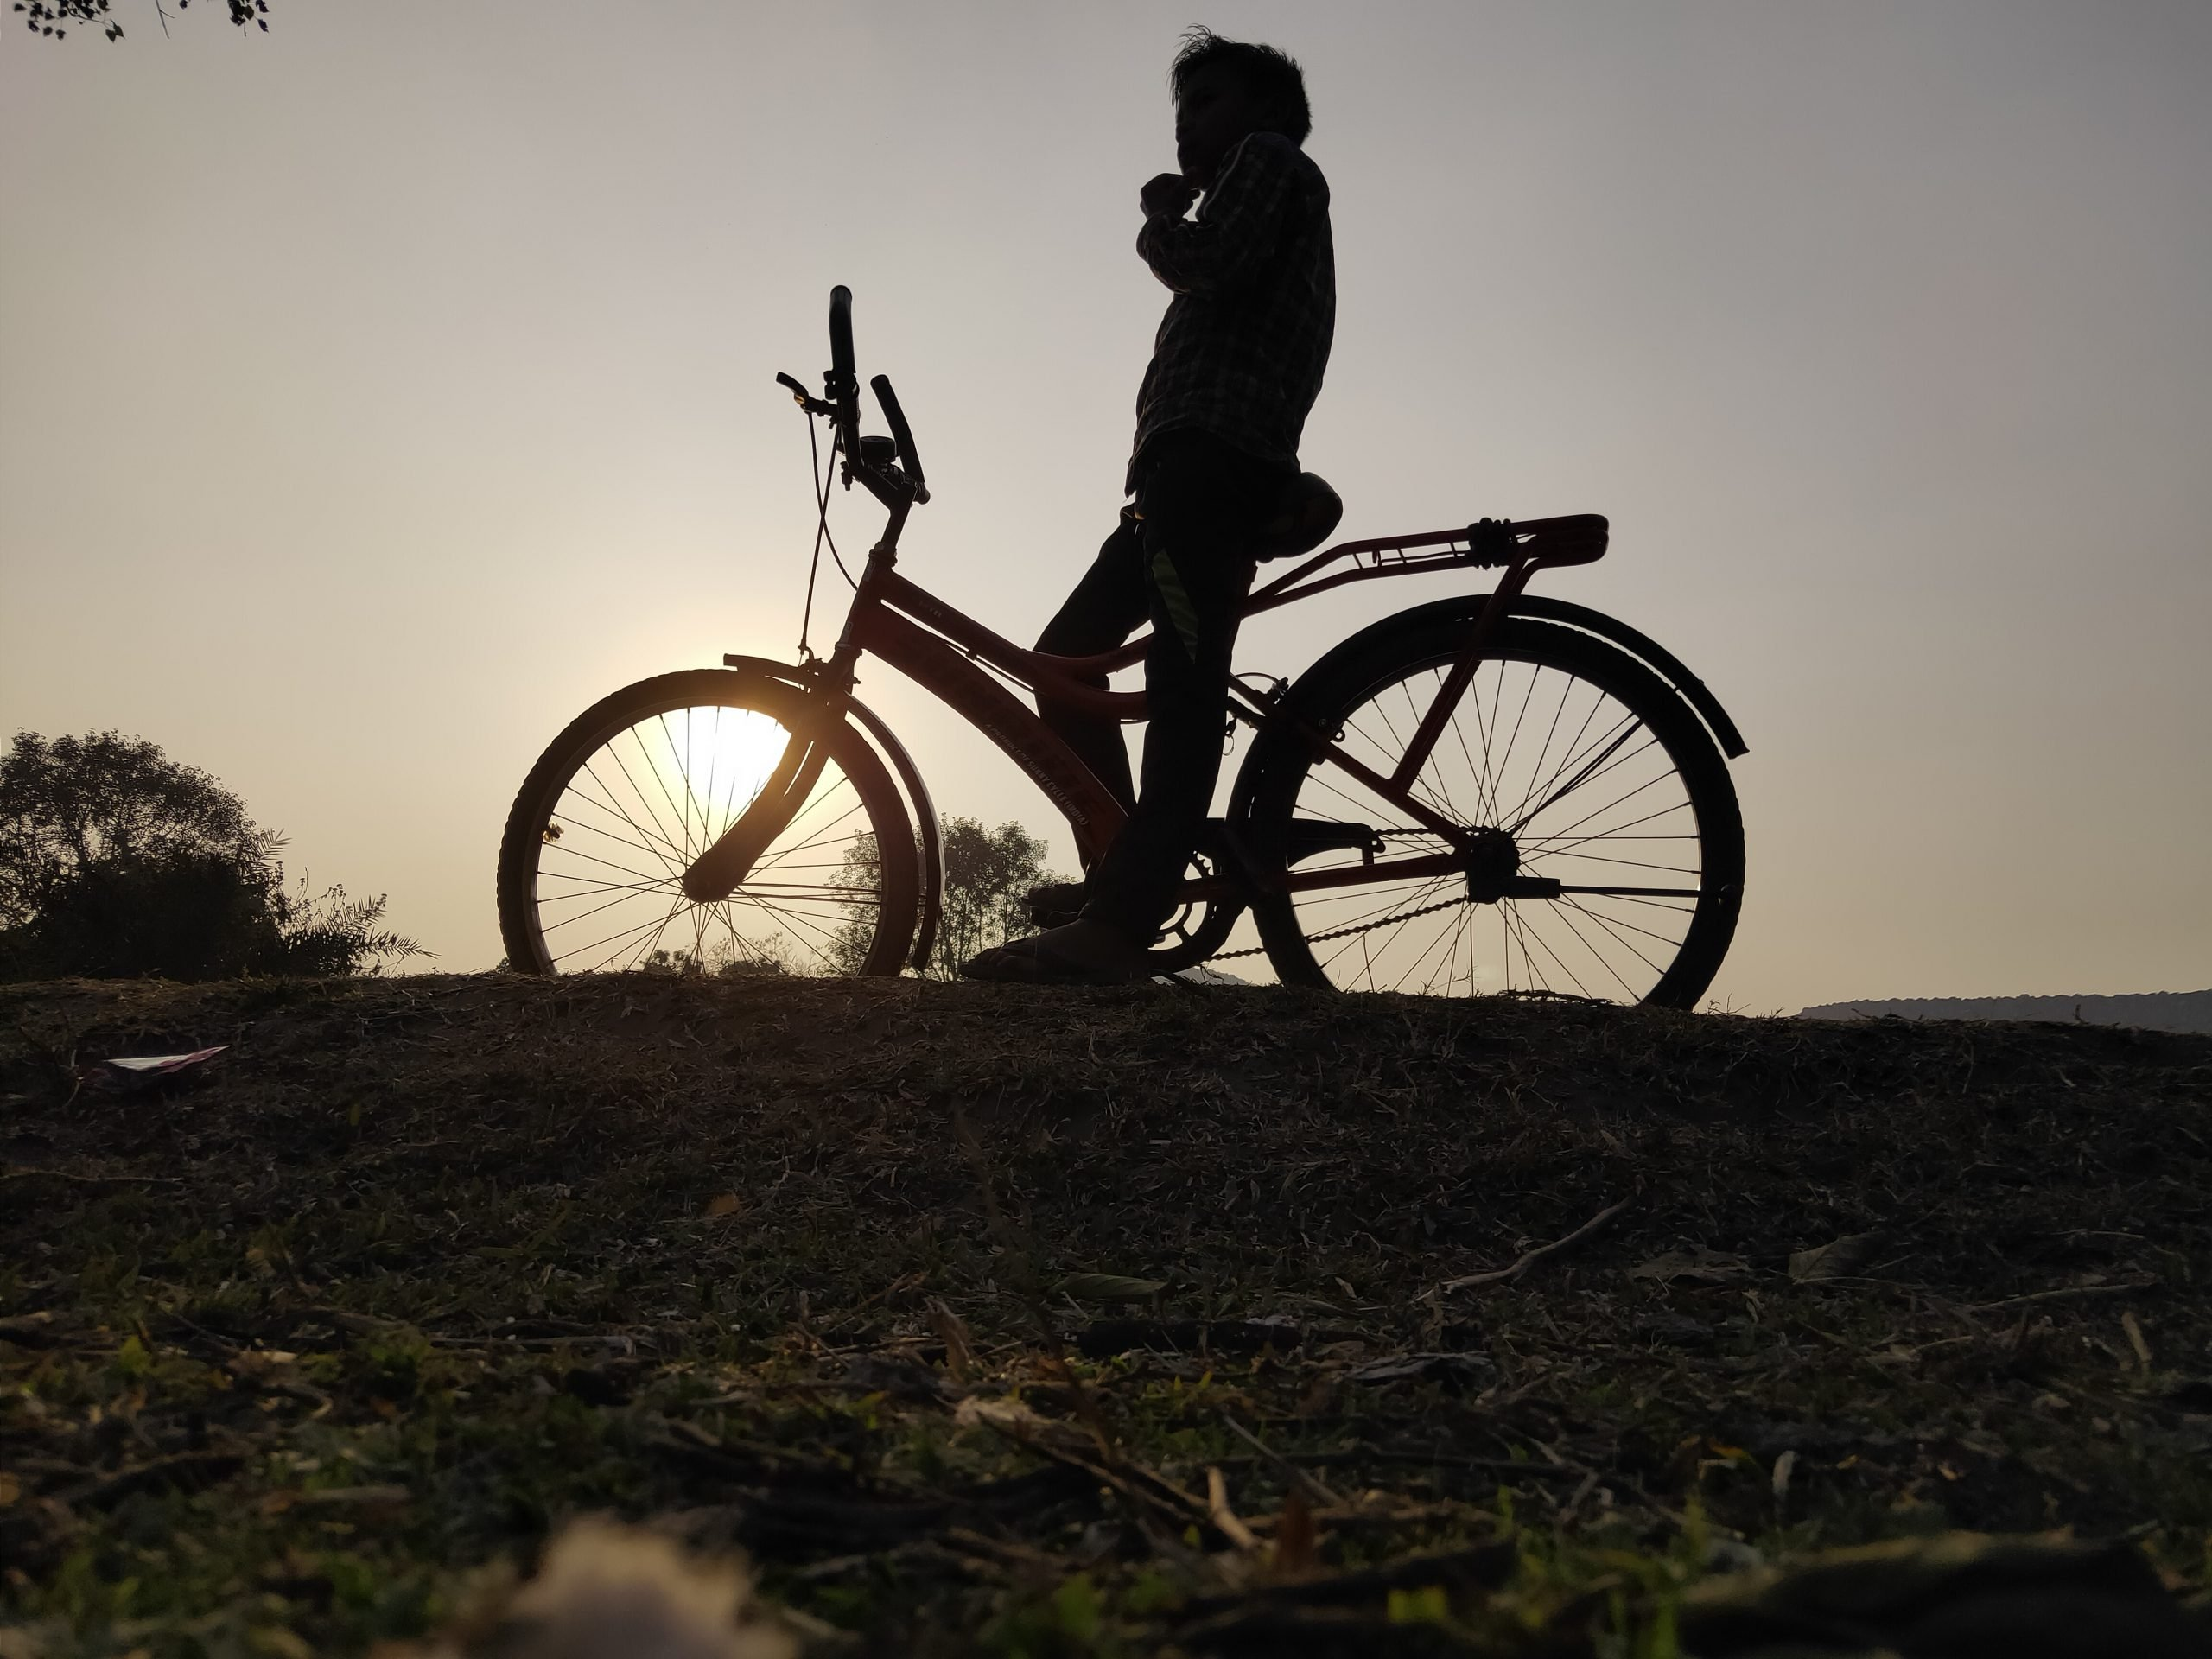 Boy on cycle during sunset